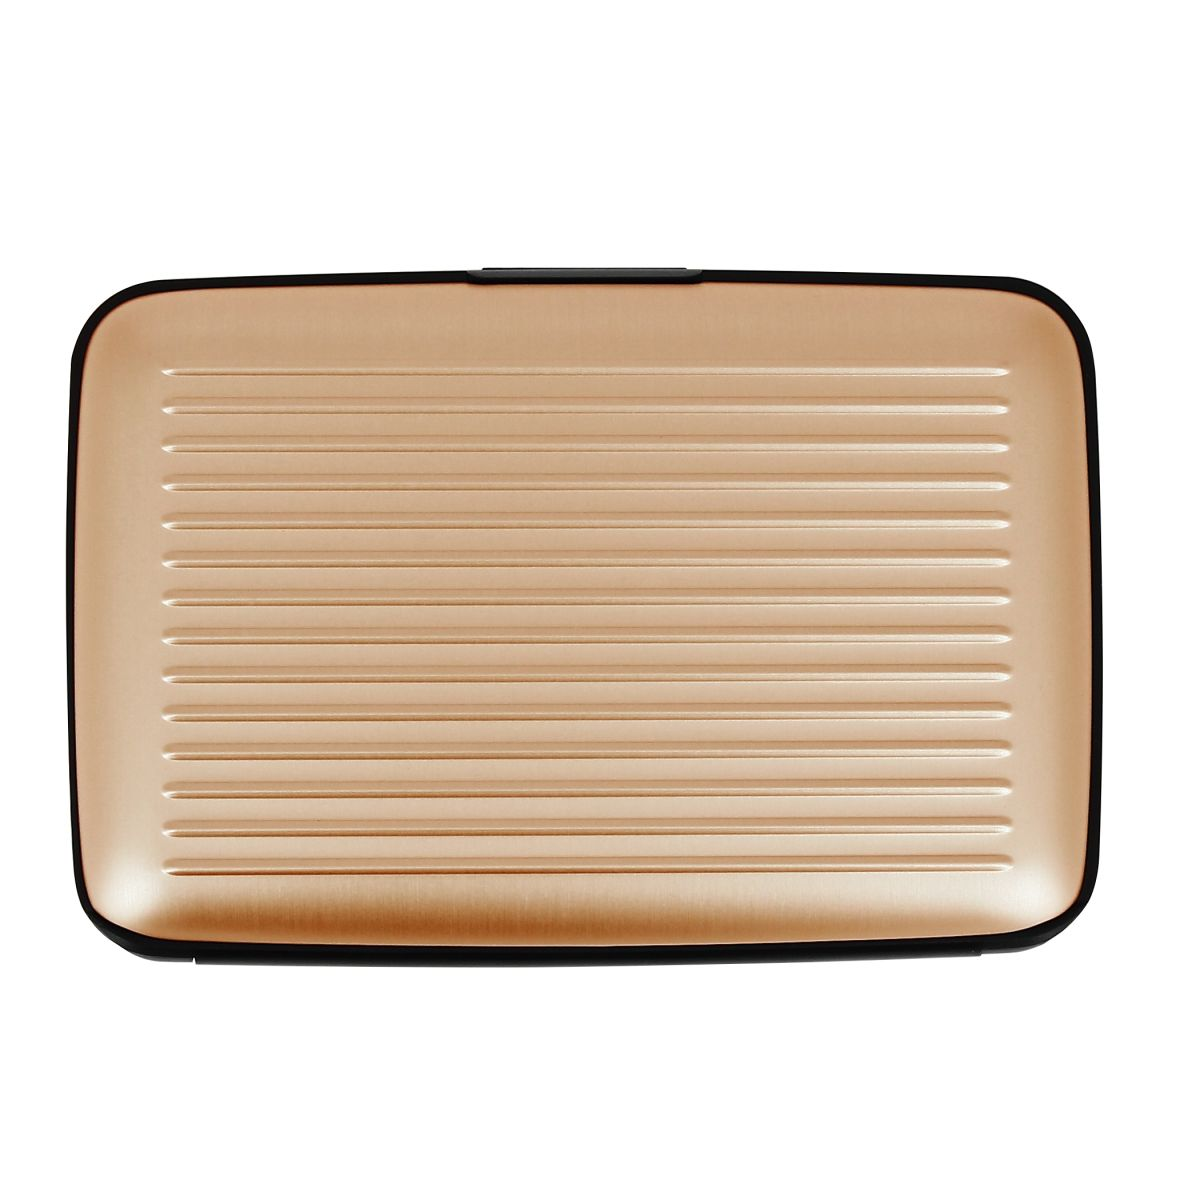 OGON Aluminum Wallet - Rose Gold